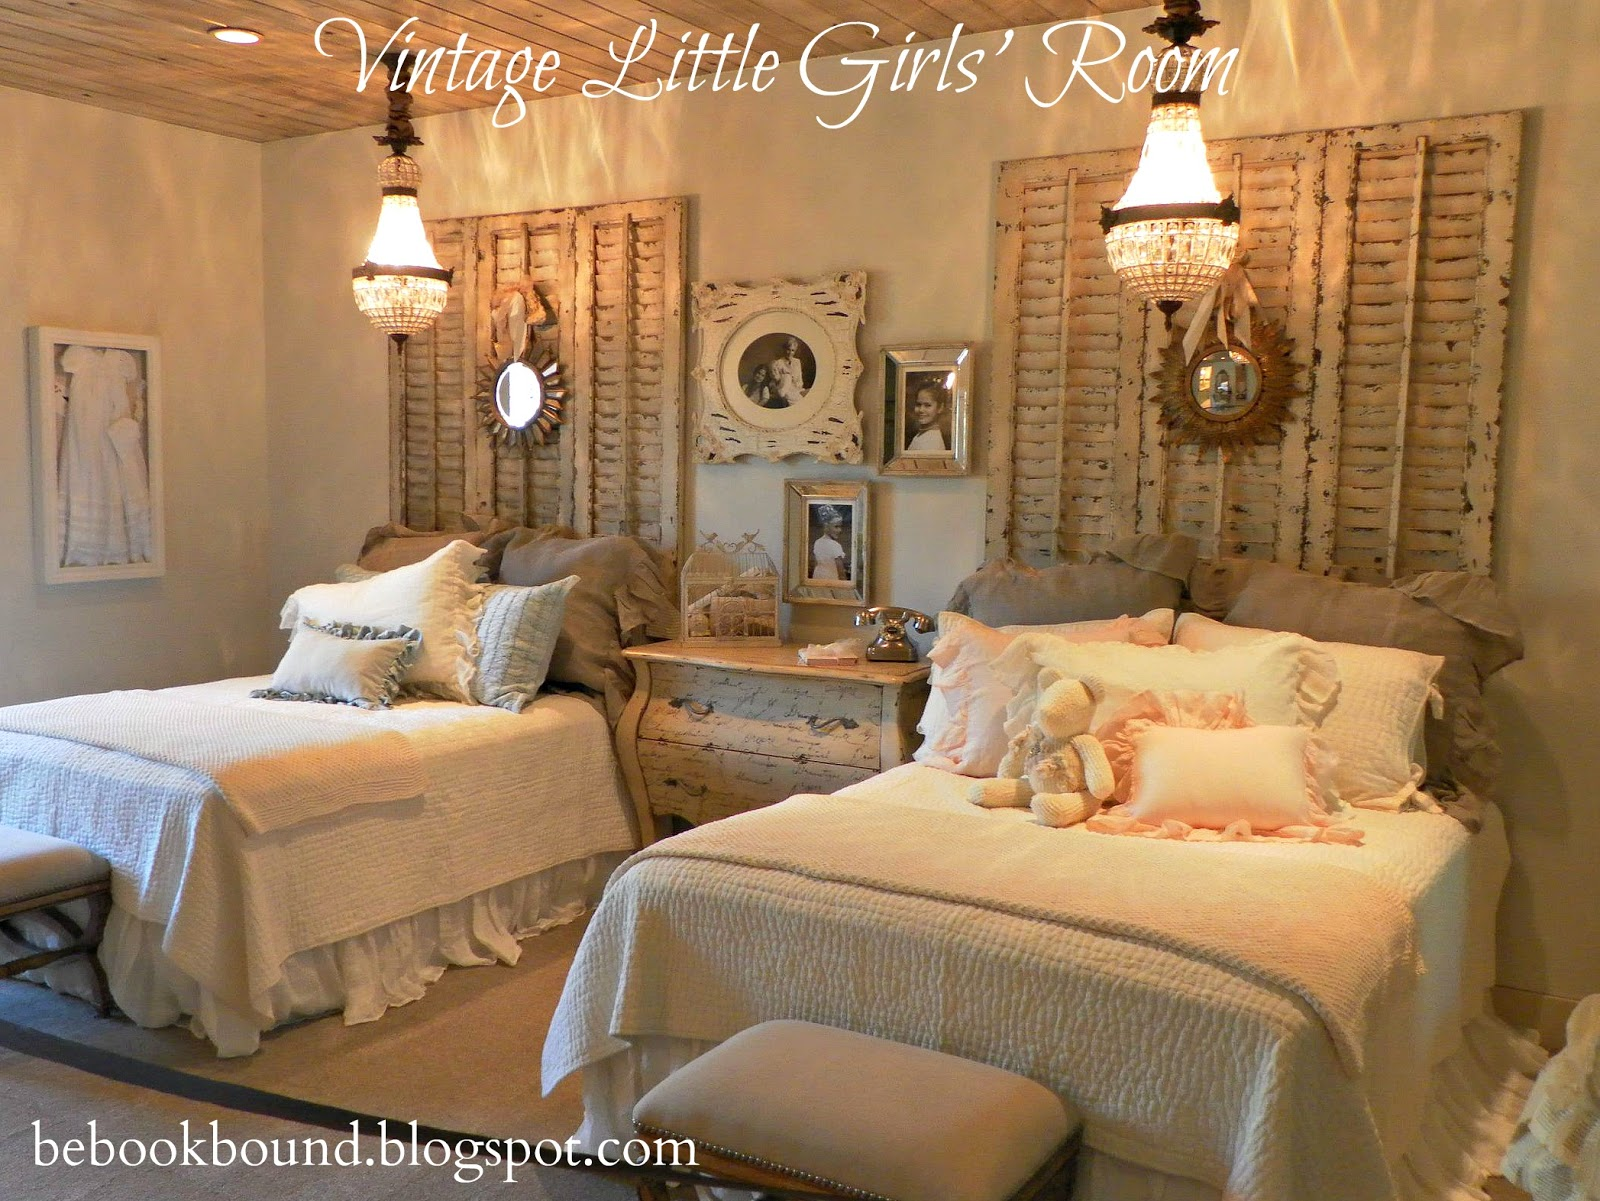 Be book bound little house on the prairie a vintage bedroom for little girls - Girls room ideas ...